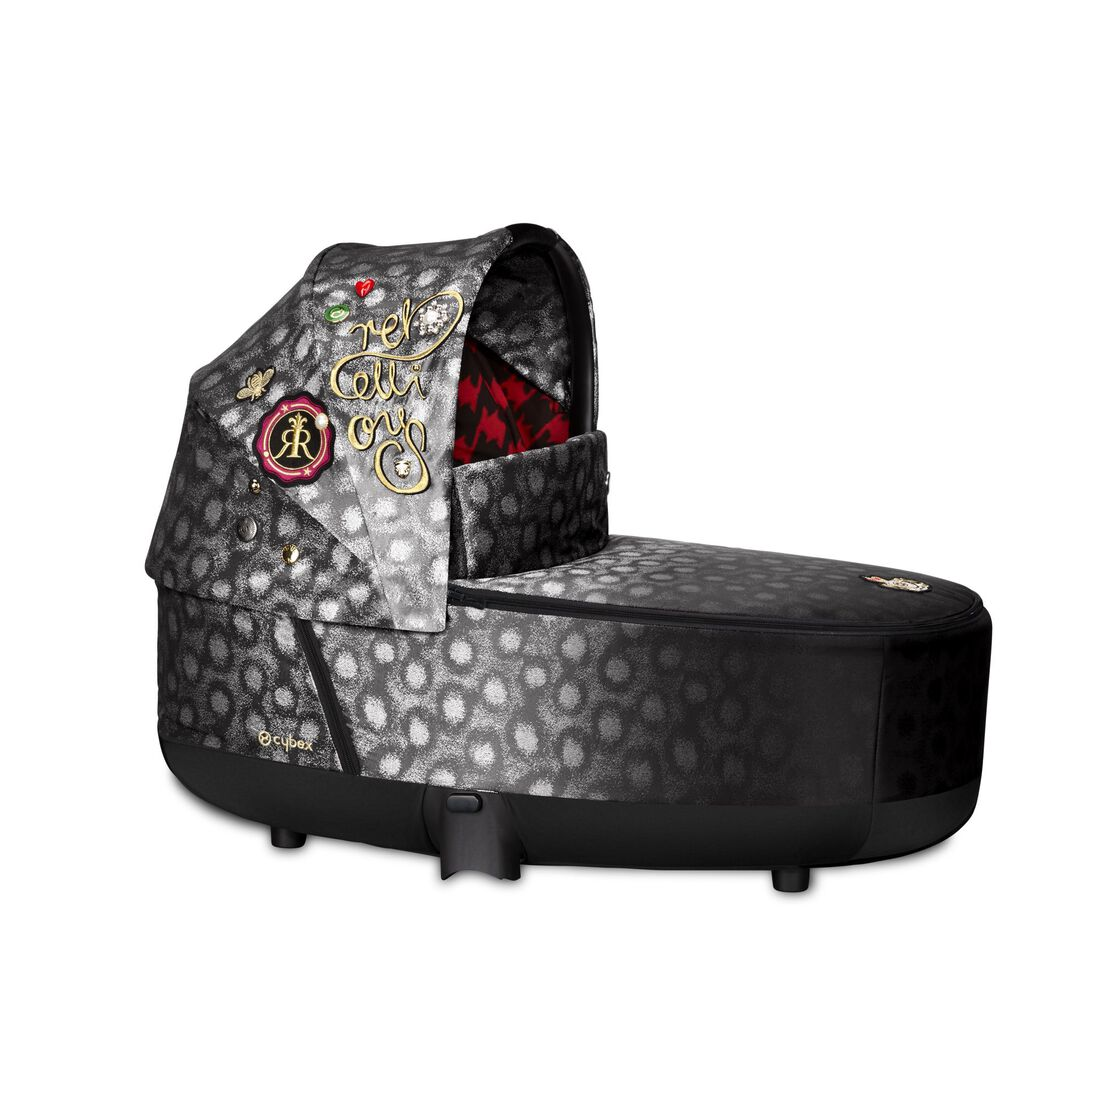 CYBEX Priam Lux Carry Cot - Rebellious in Rebellious large Bild 1